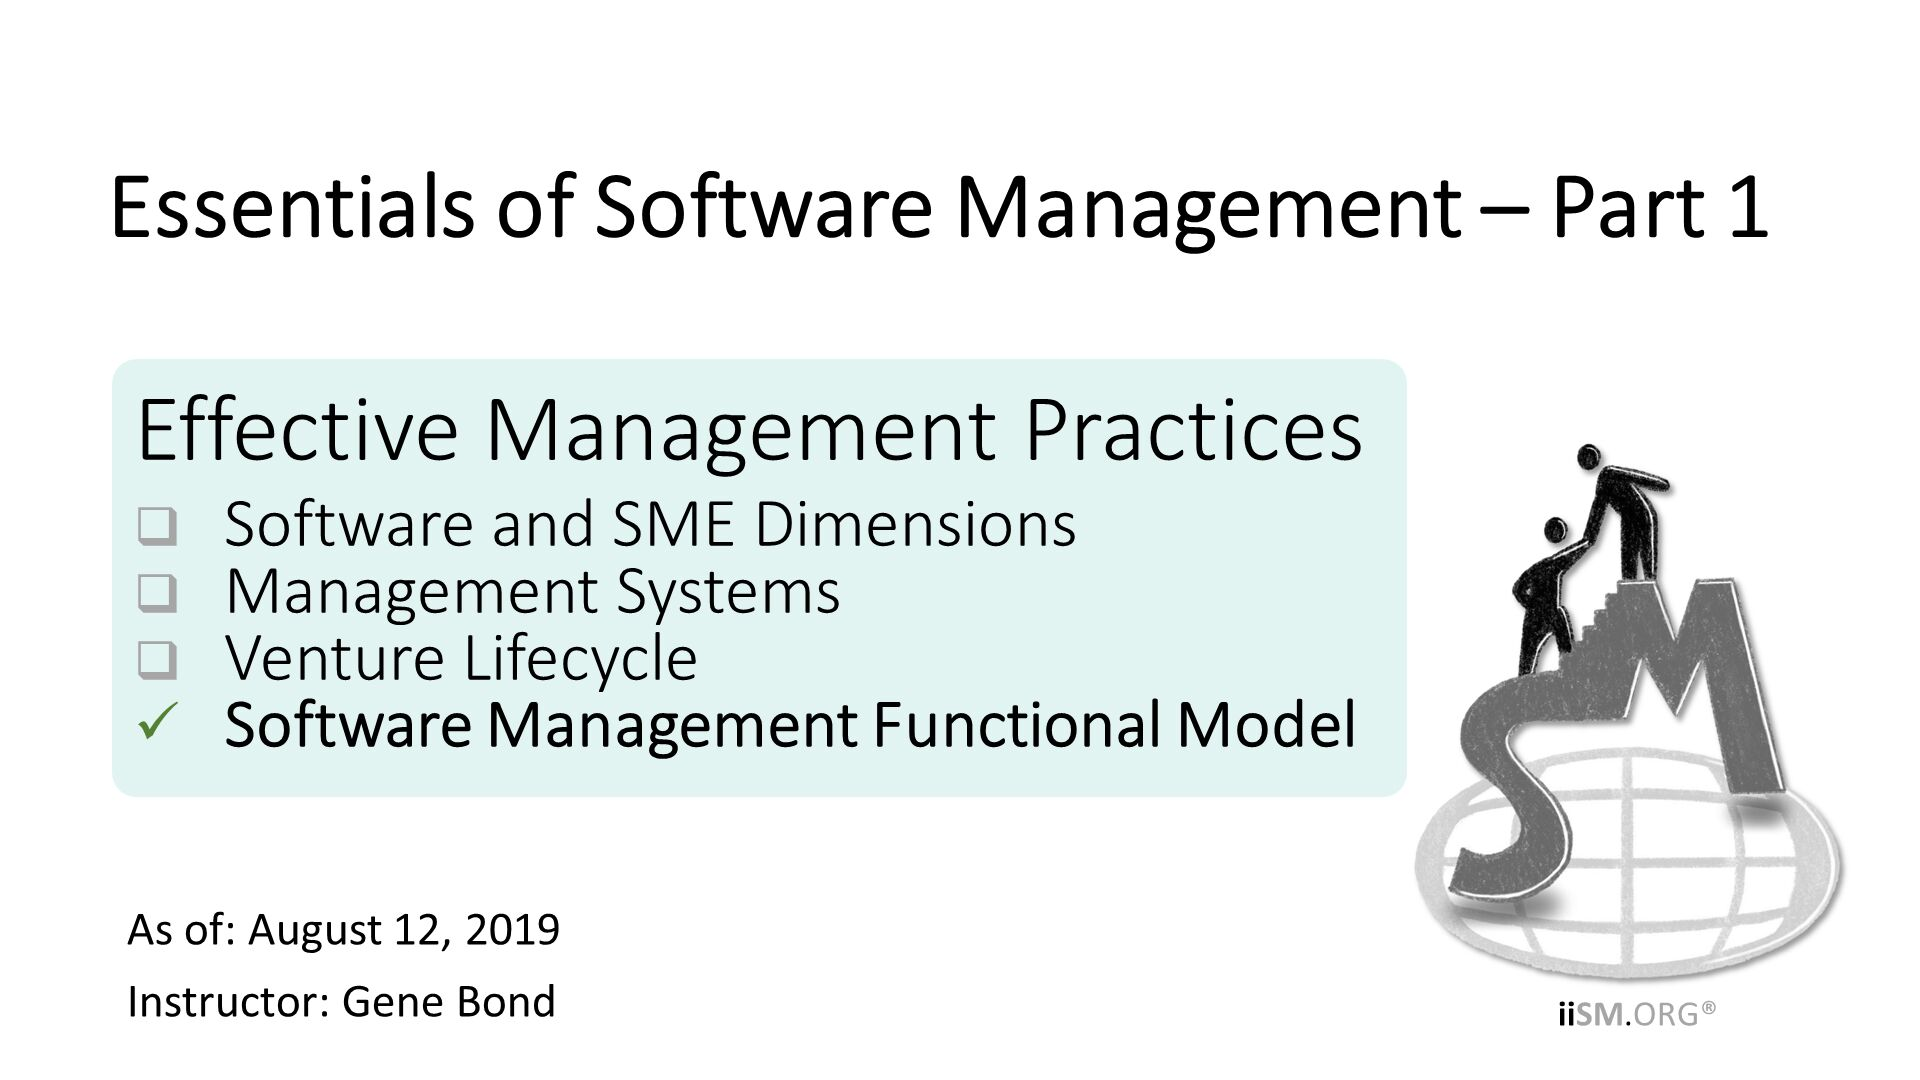 Effective Management Practices Software and SME Dimensions Management Systems Venture Lifecycle Software Management Functional Model. As of: August 12, 2019 Instructor: Gene Bond . Essentials of Software Management – Part 1.